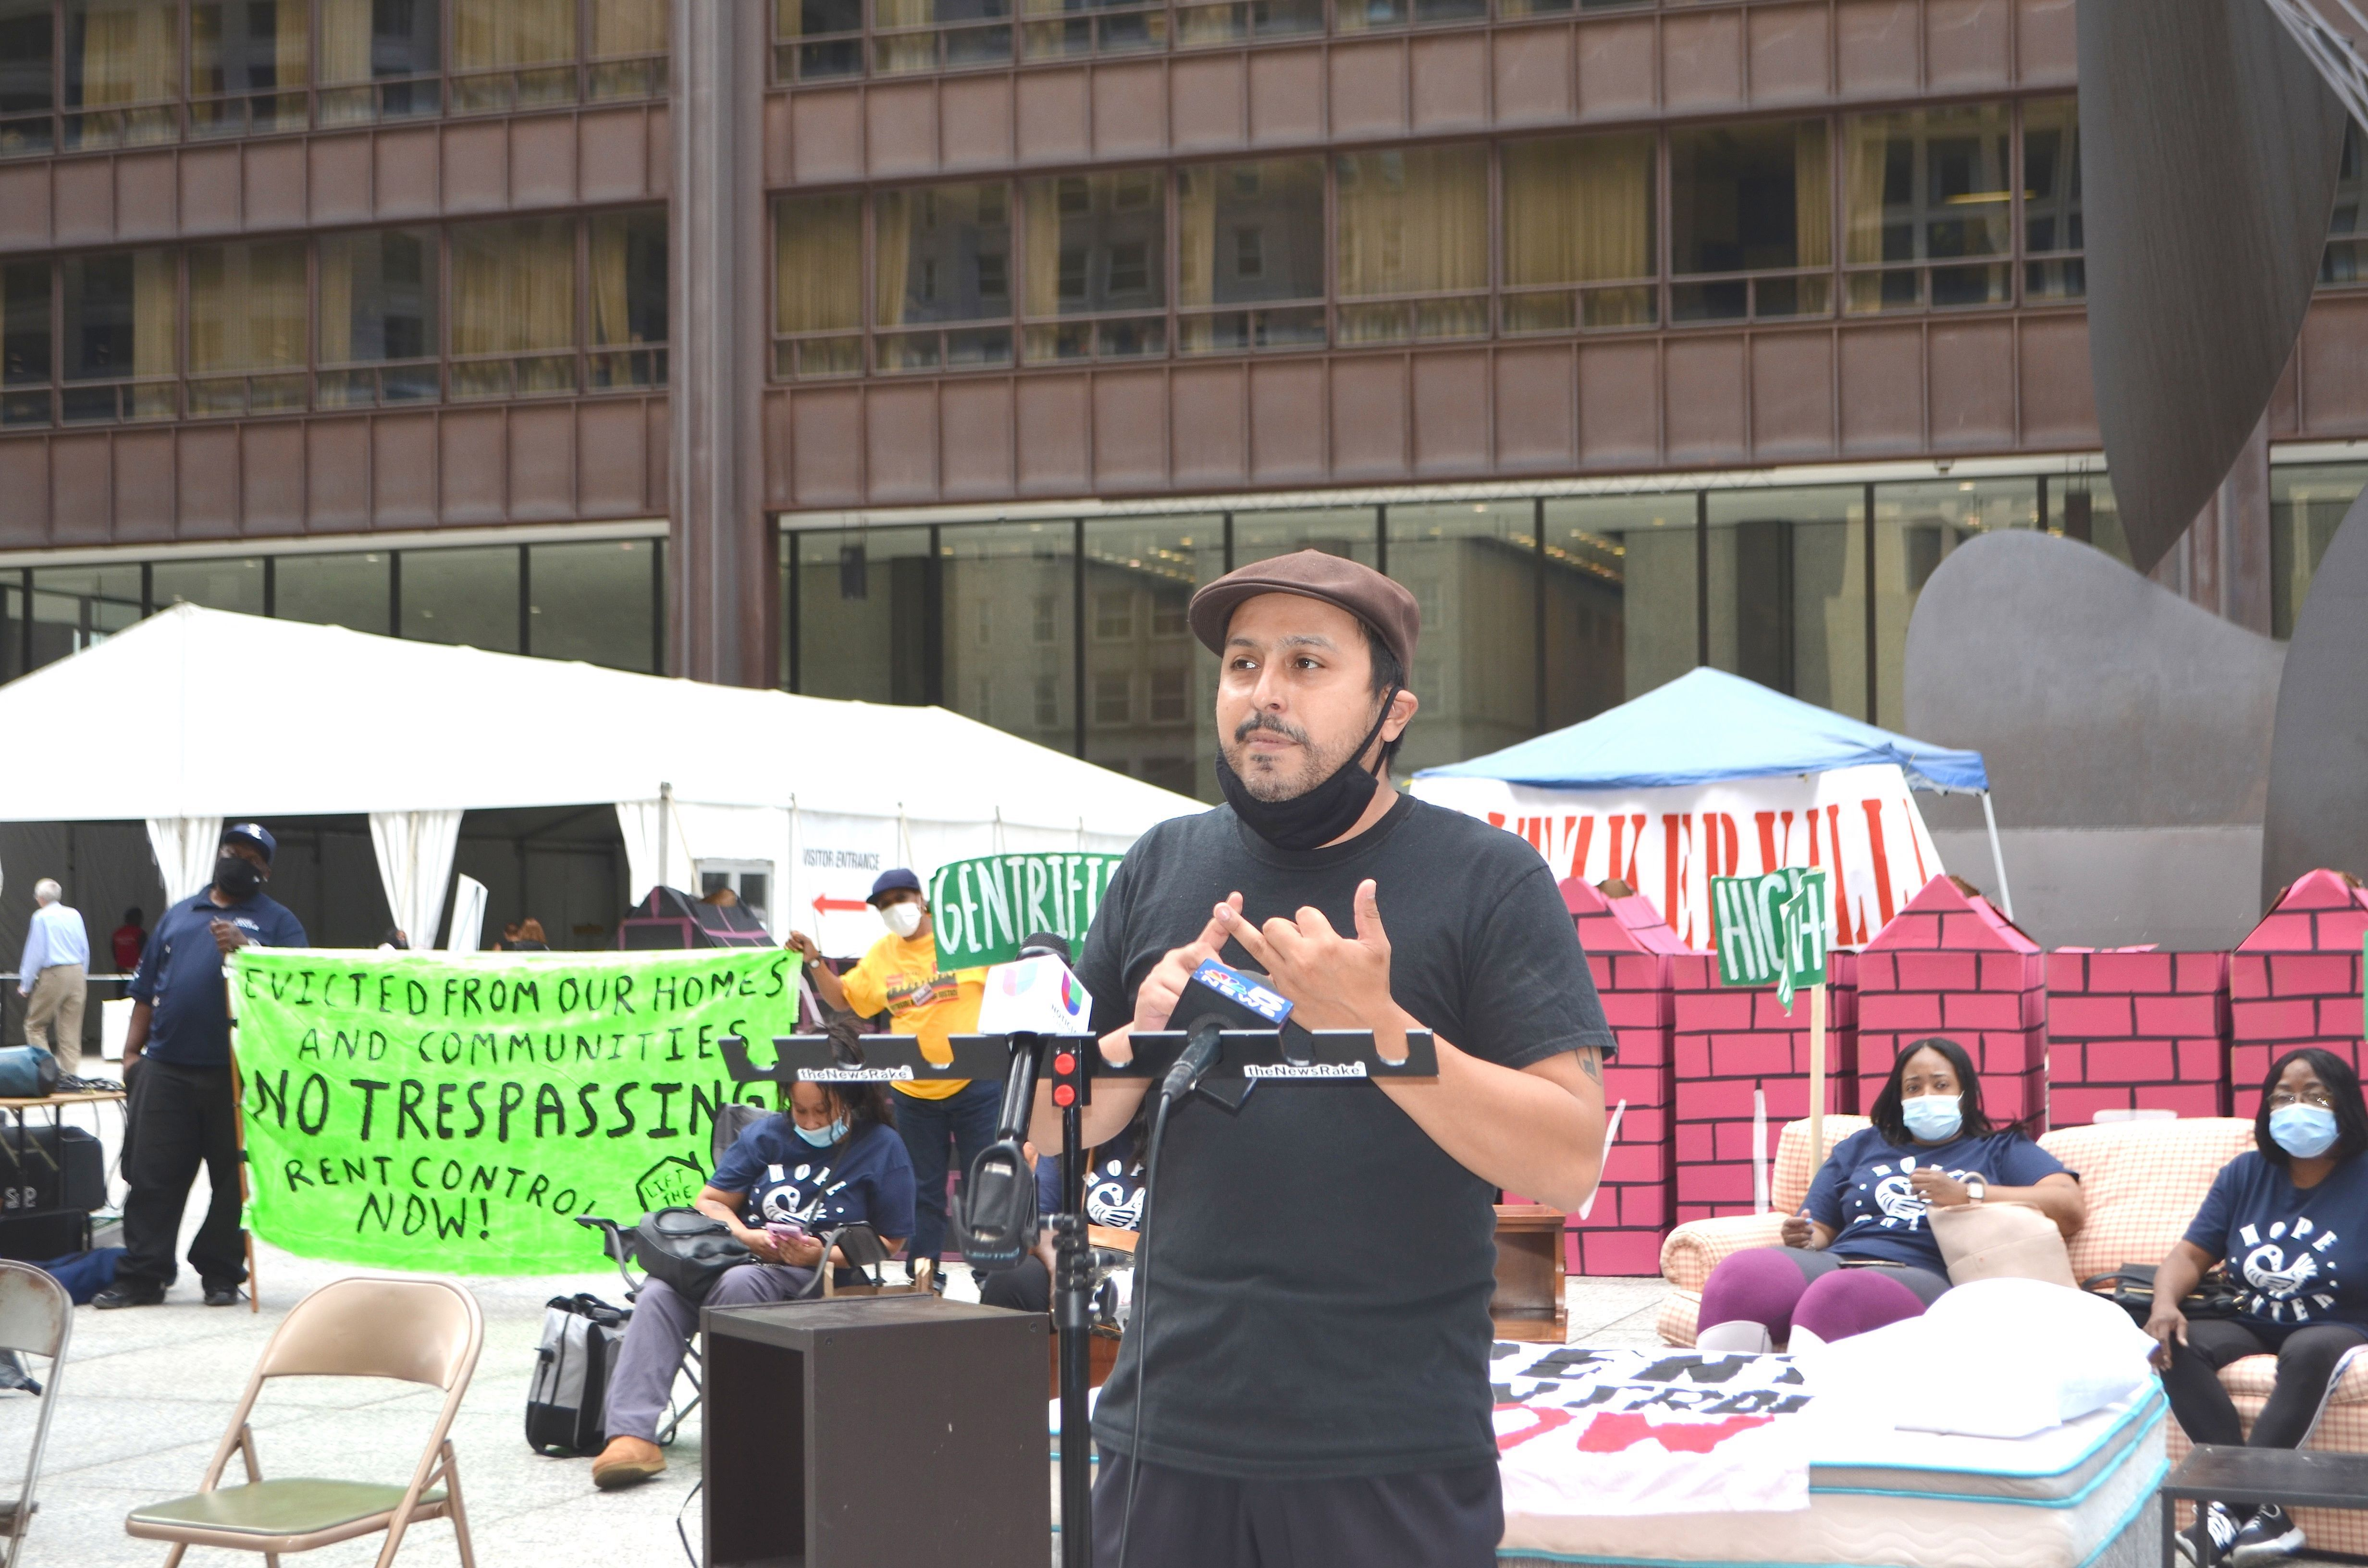 Community leaders push to expand eviction protection in